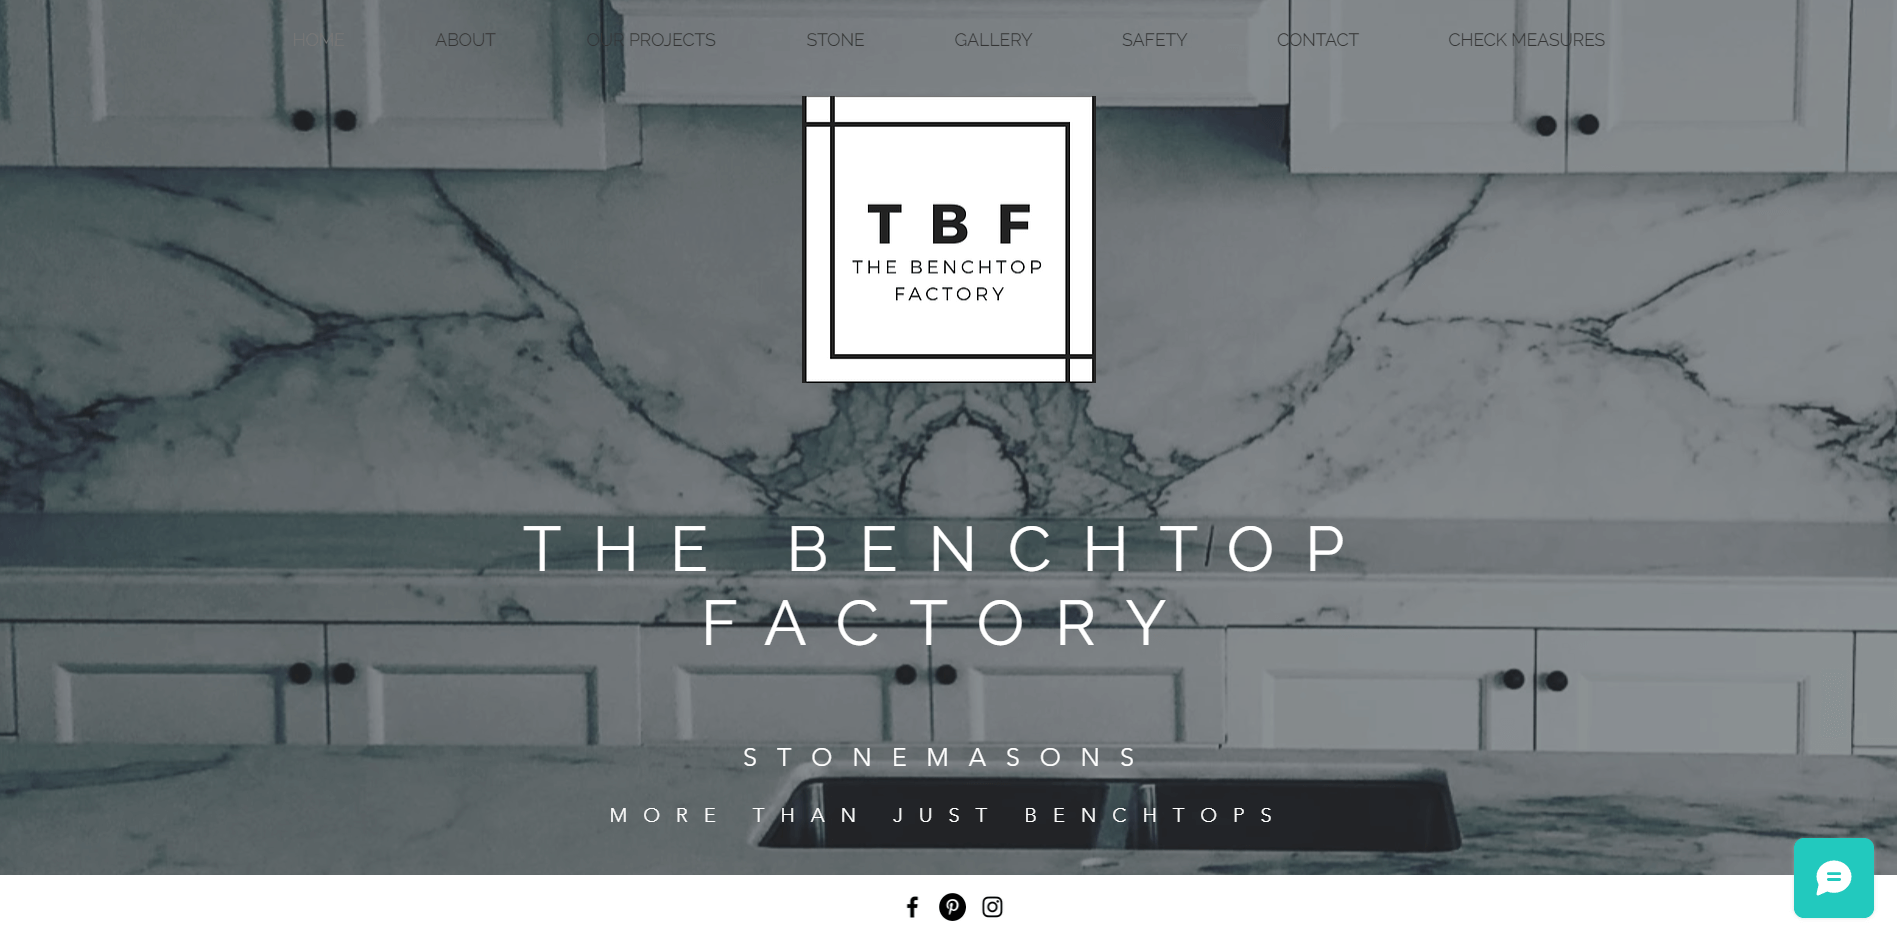 the benchtop factory